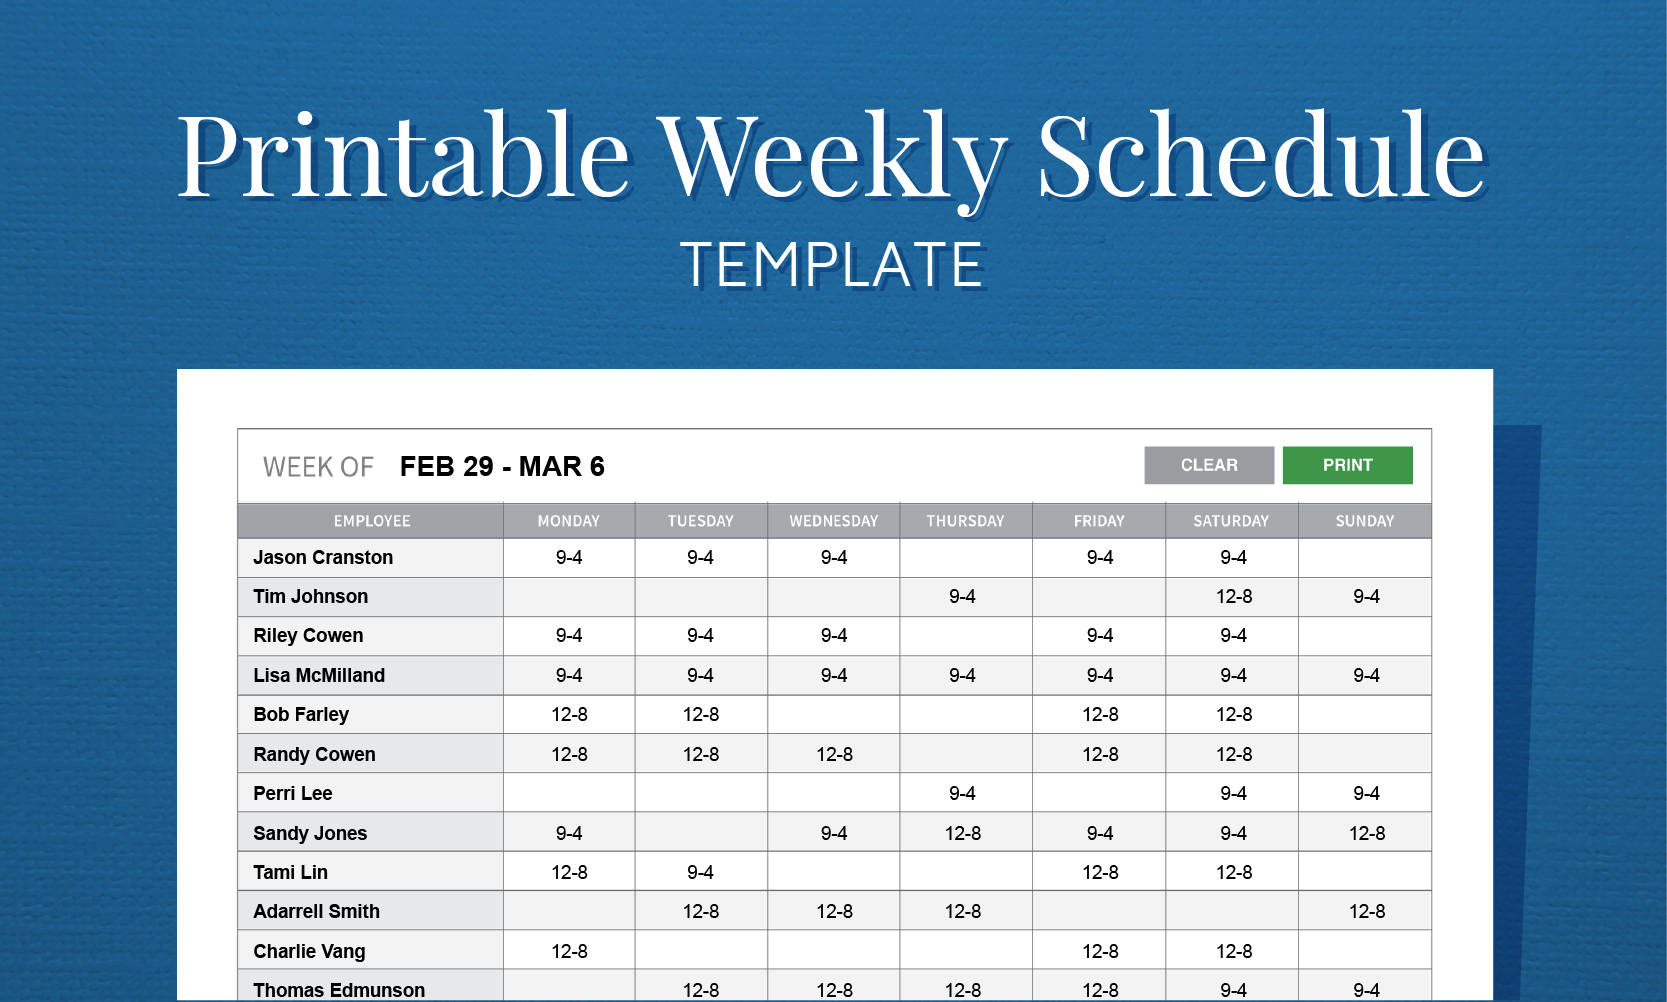 bi weekly schedule template Toreto.co